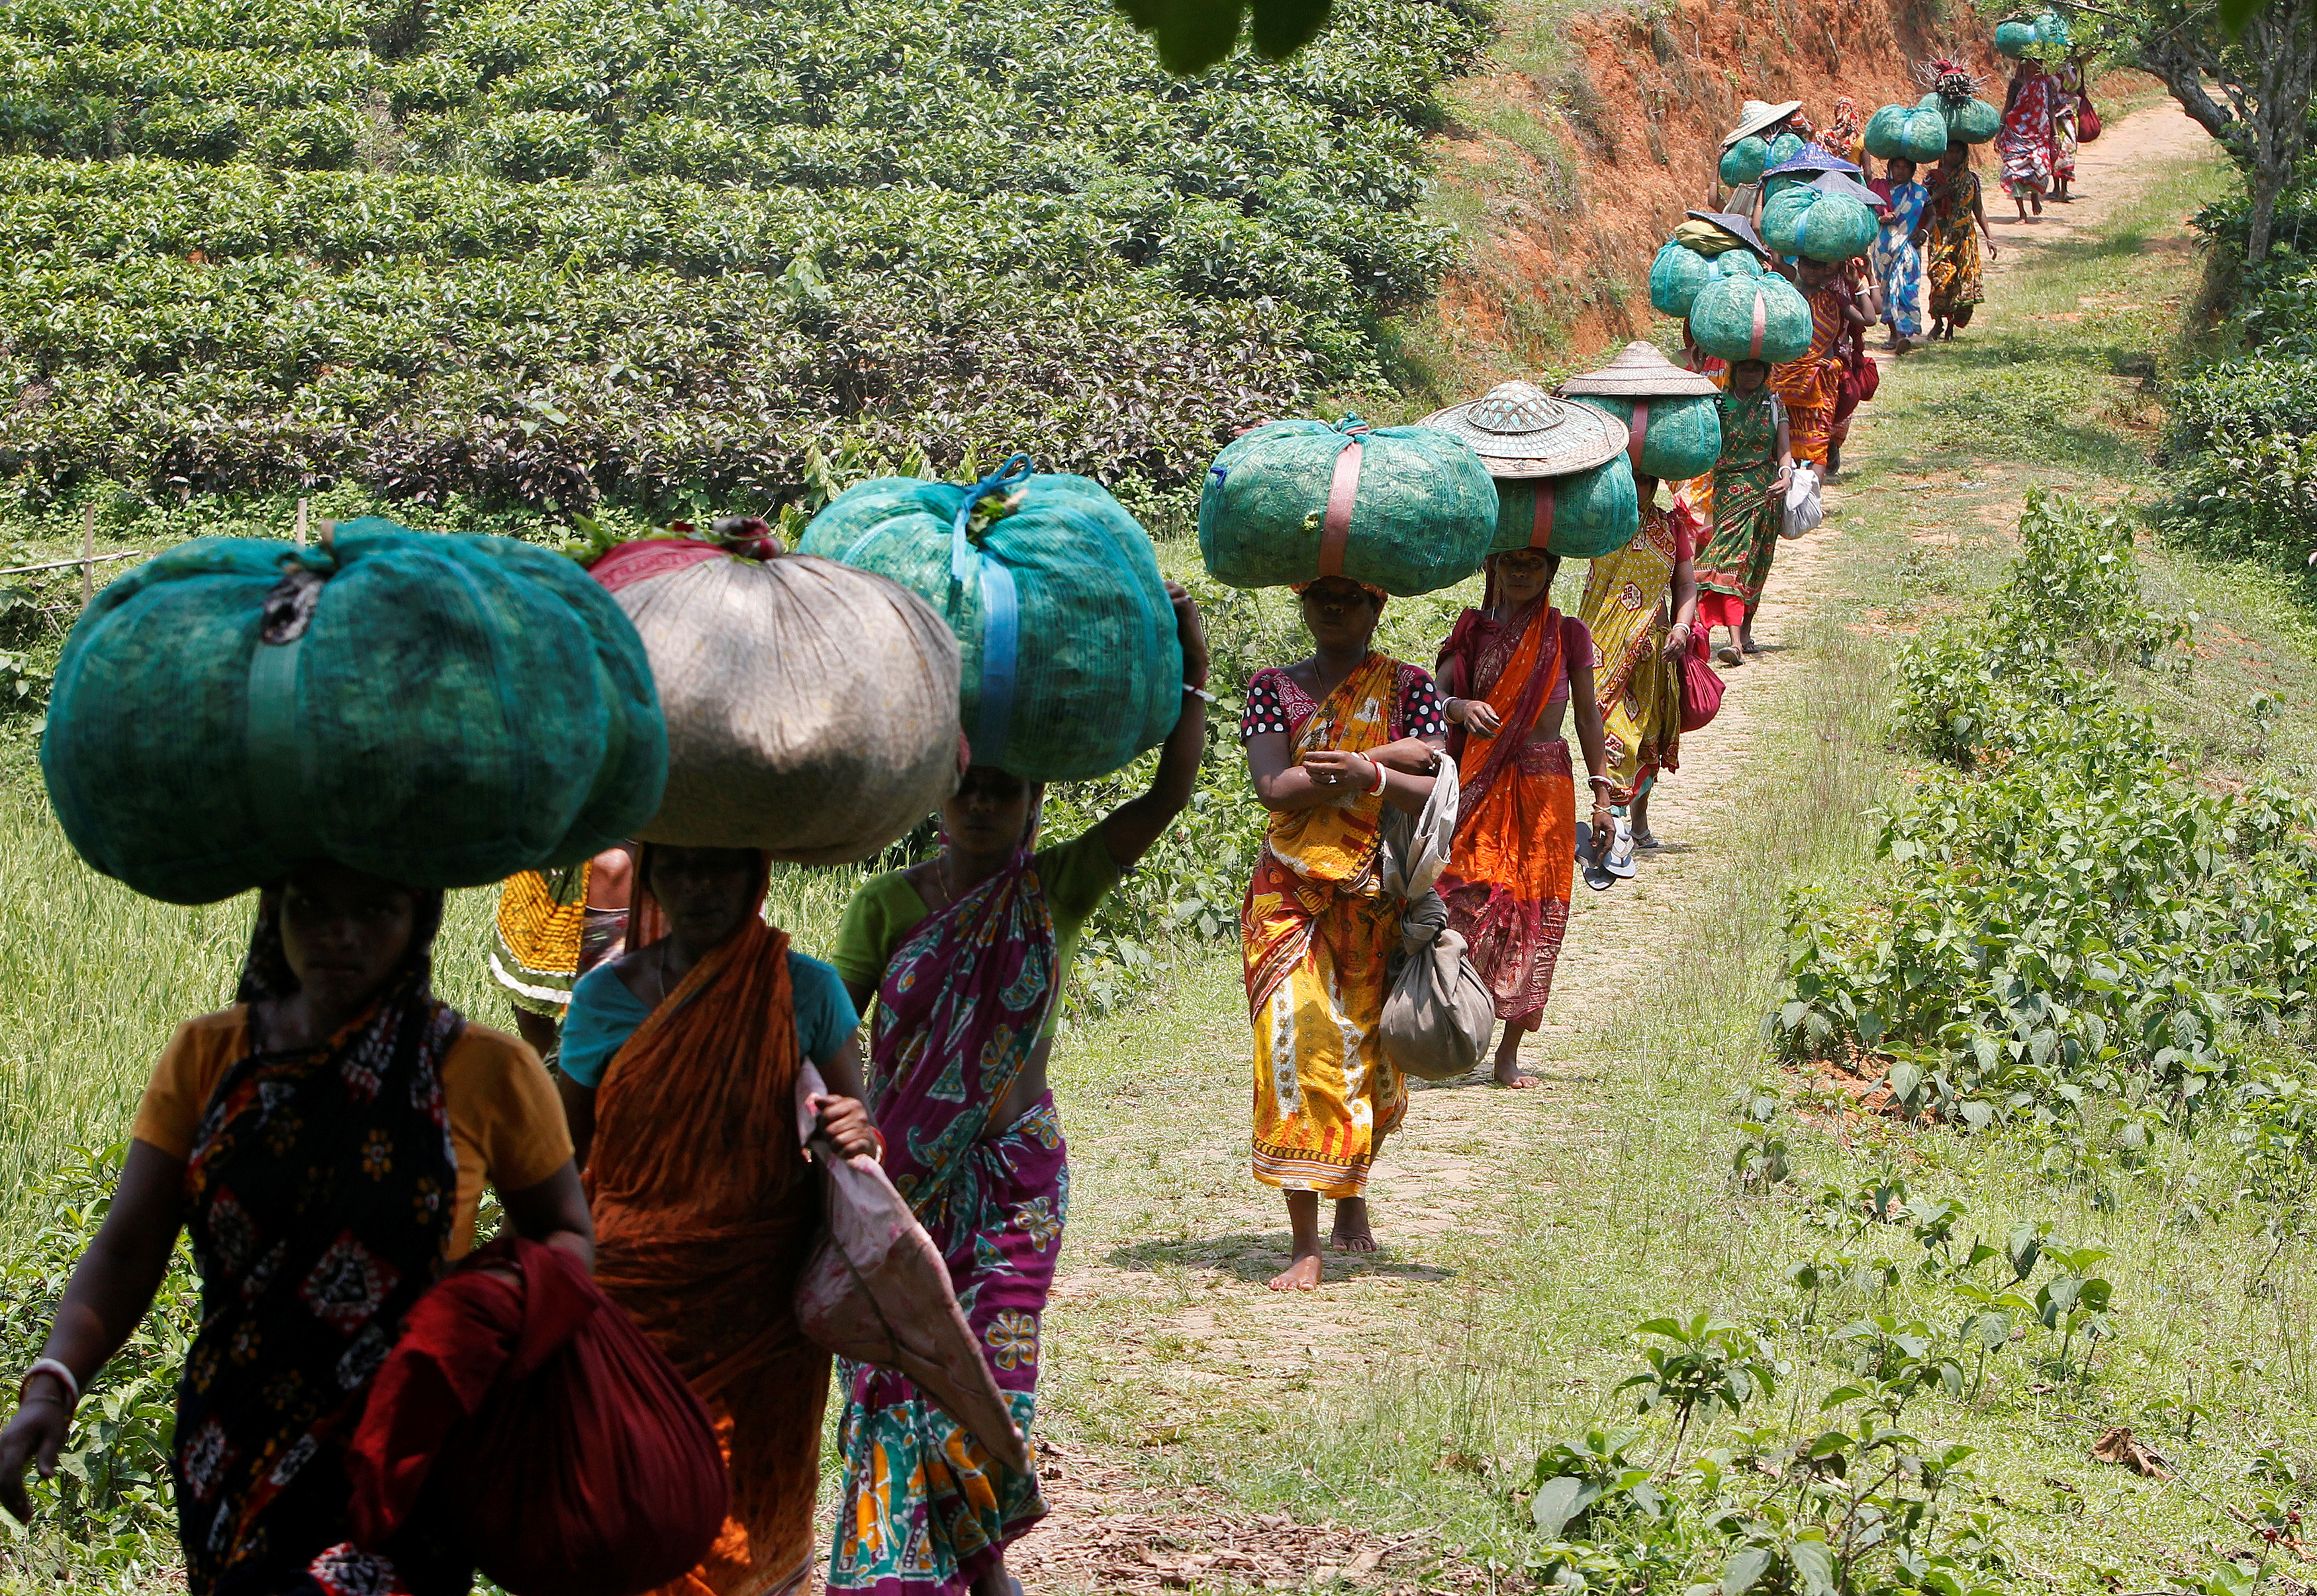 Tea garden workers carry sacks filled with tea leaves at Durgabari Tea Estate on the outskirts of Agartala, India May 4, 2017. REUTERS/Jayanta Dey - RTS153F8